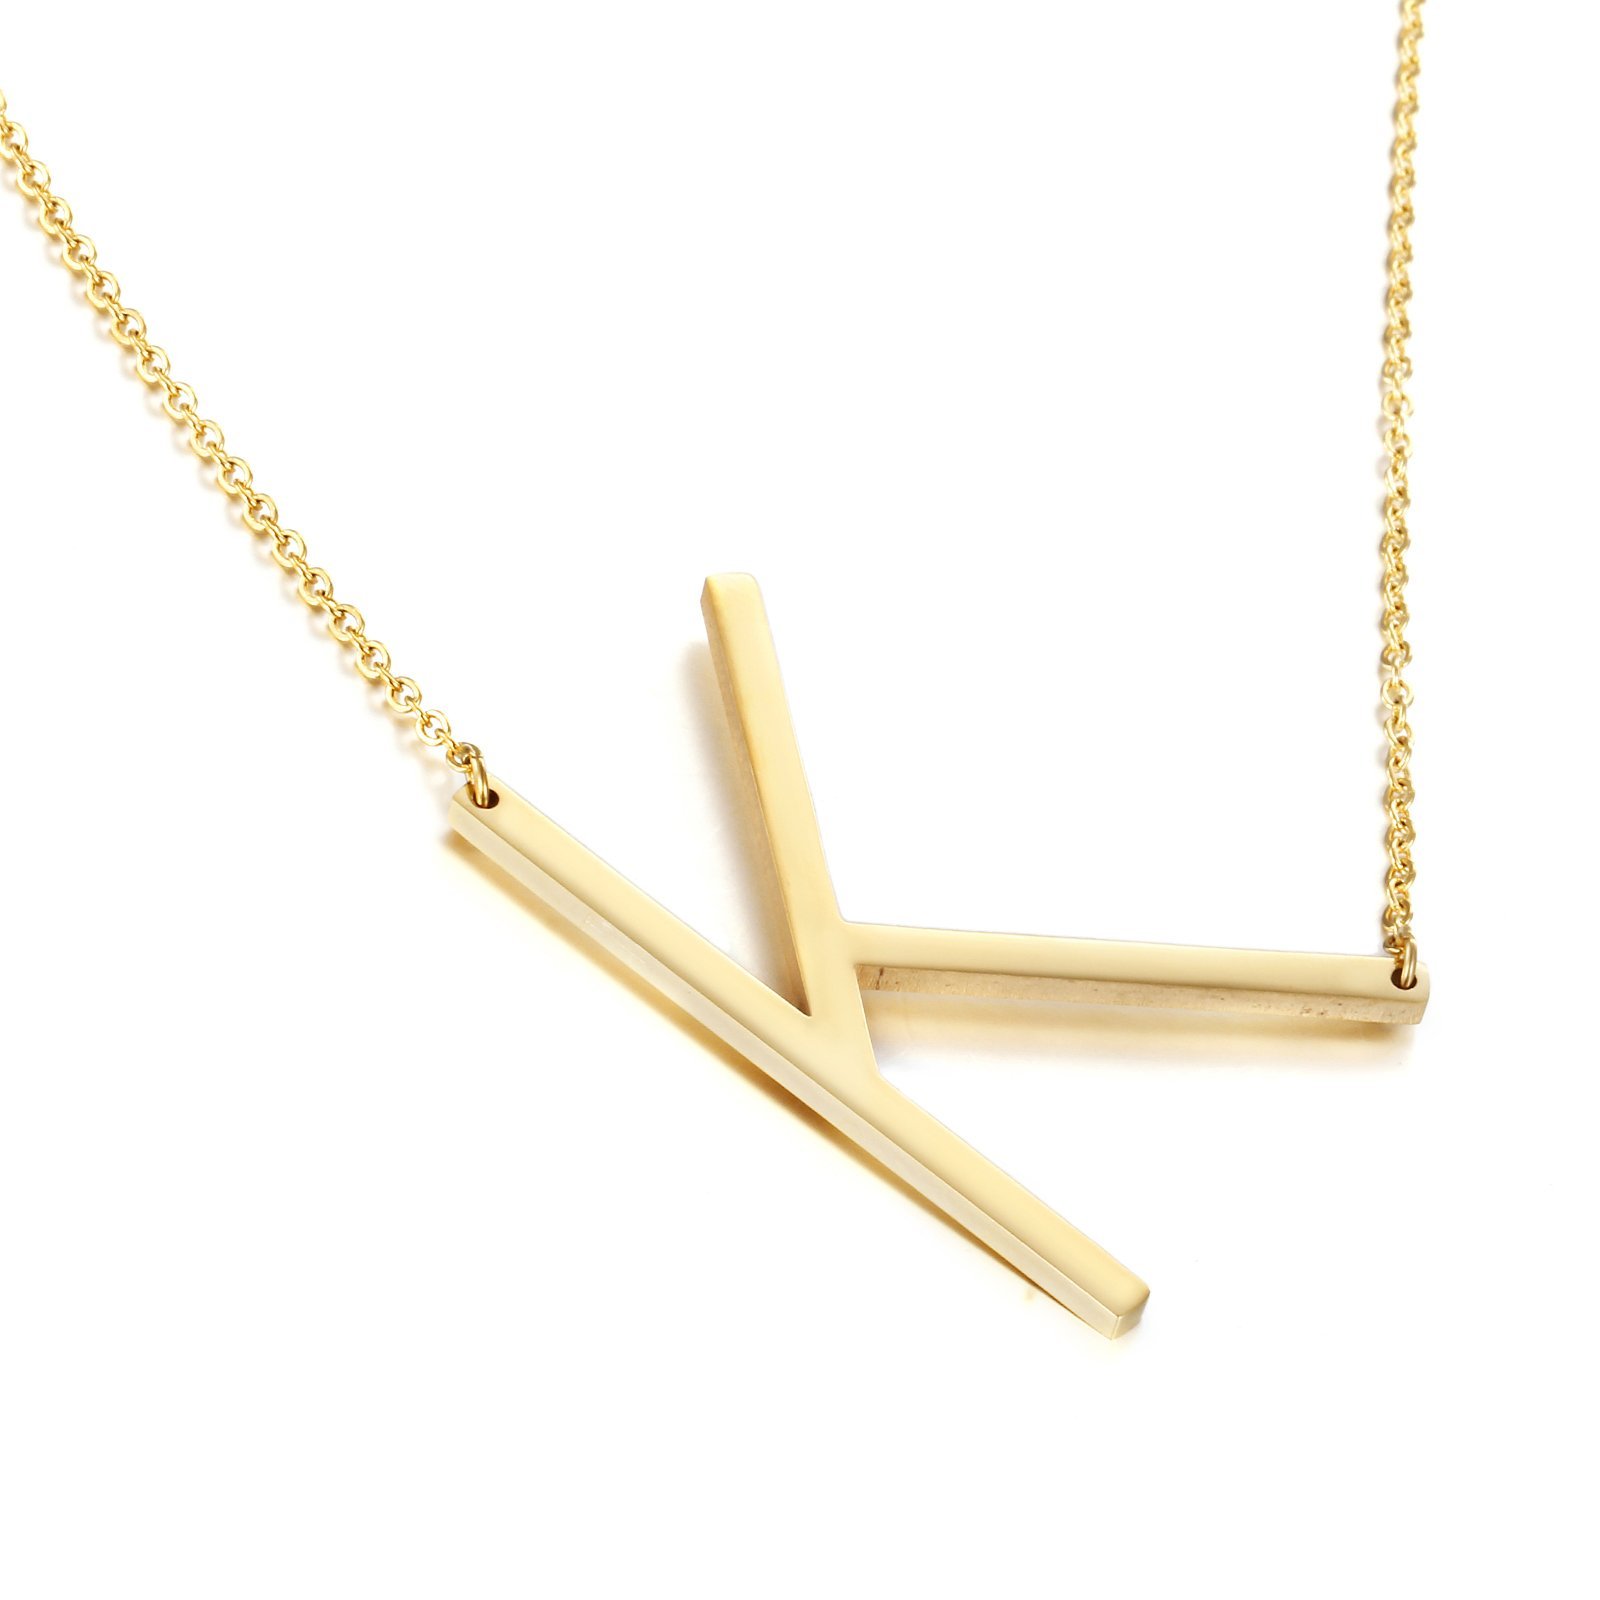 Awegift Minimalist Jewelry for Women Initial Big Letter Pendant Necklace Birthday Gifts for Her Gold K